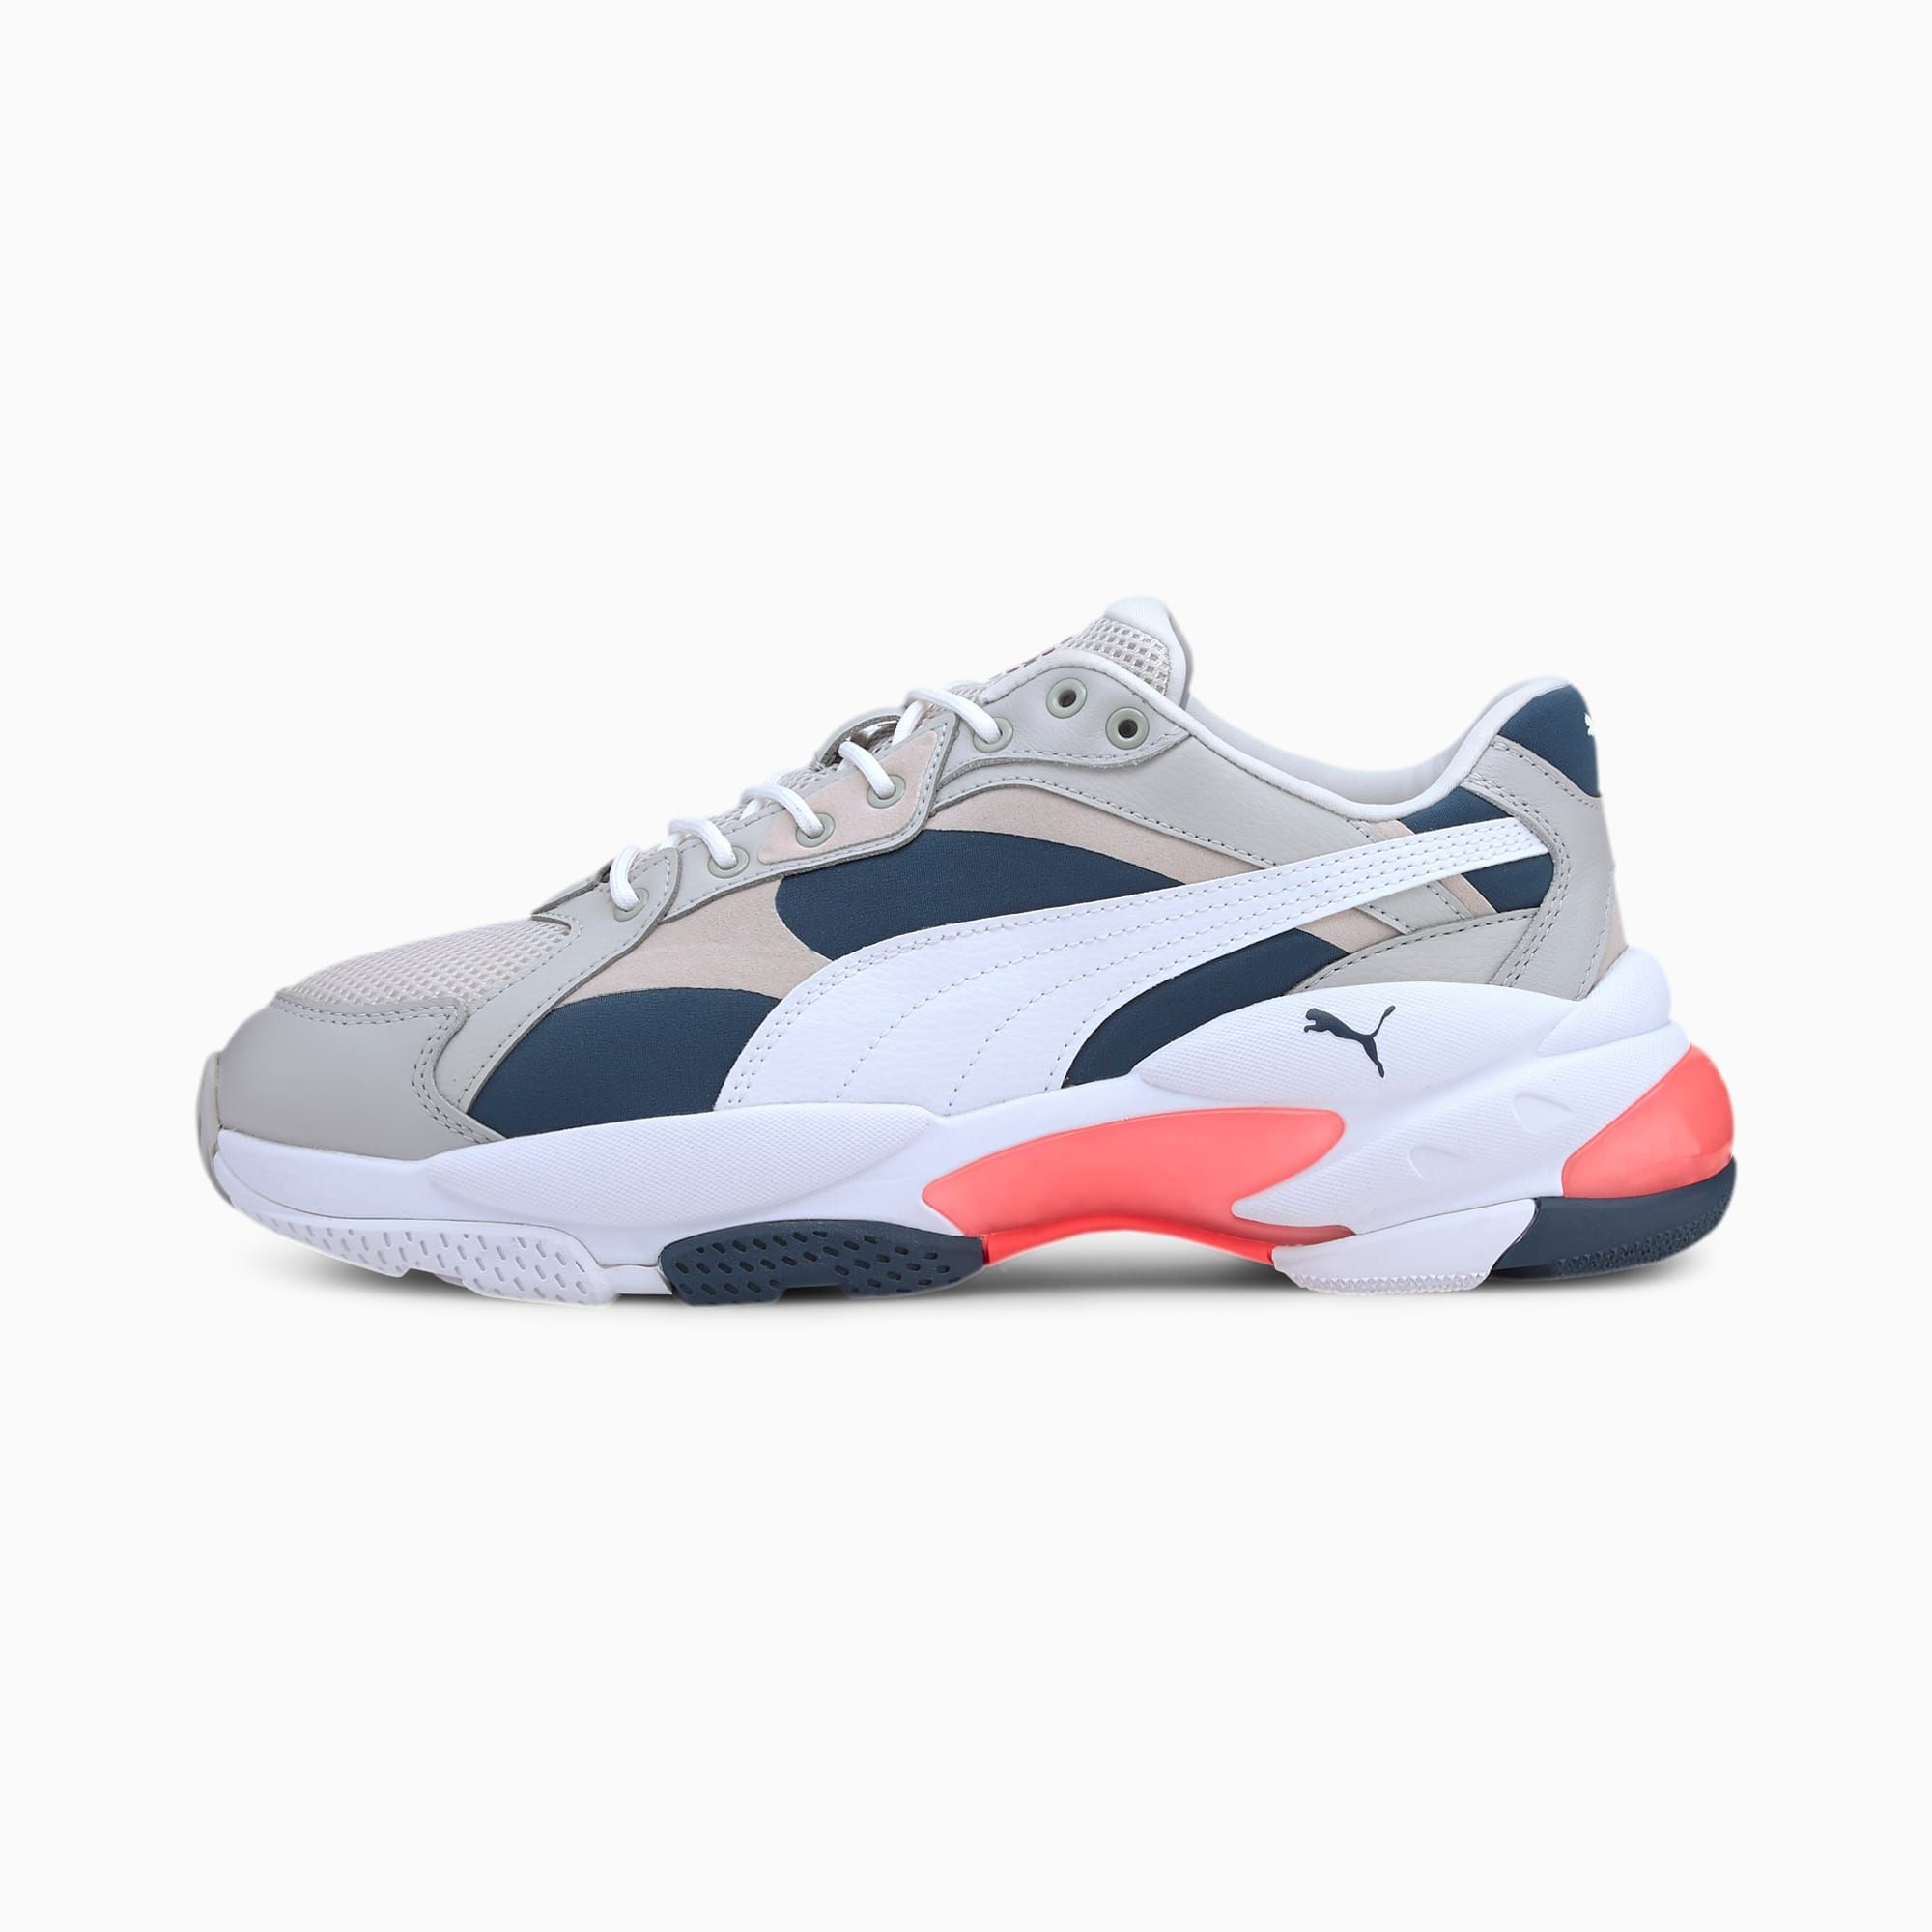 Photo of PUMA Lqdcell Epsilon Pt Trainers,  Grey Violet/Dark Denim, size 10.5, Shoes